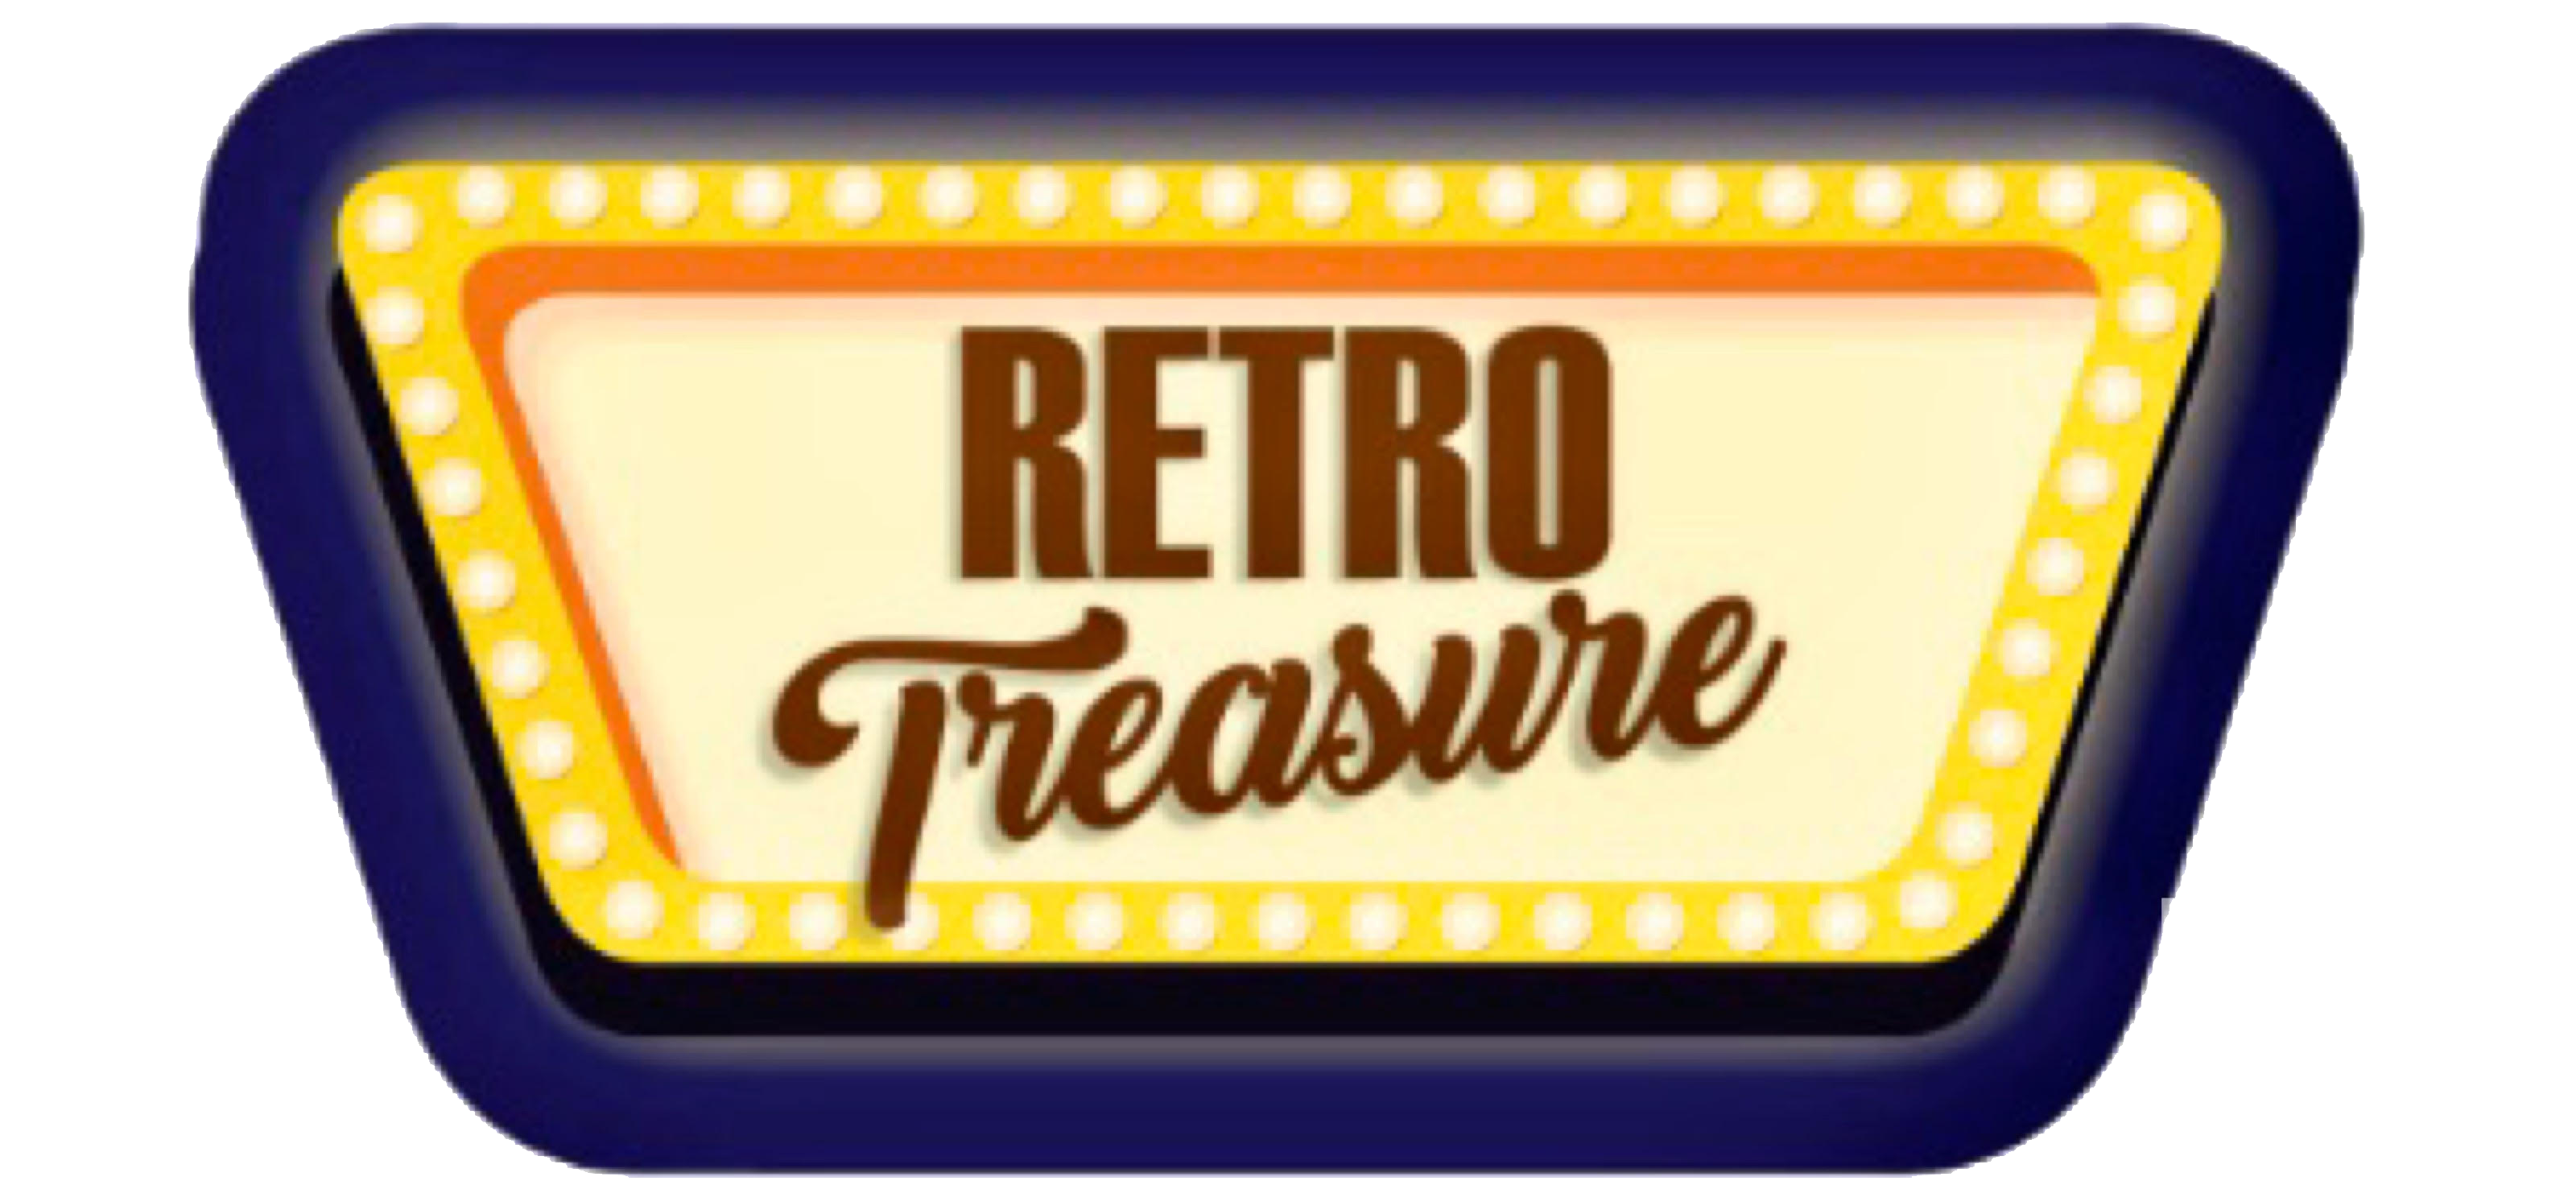 Retro Treasure Leeds